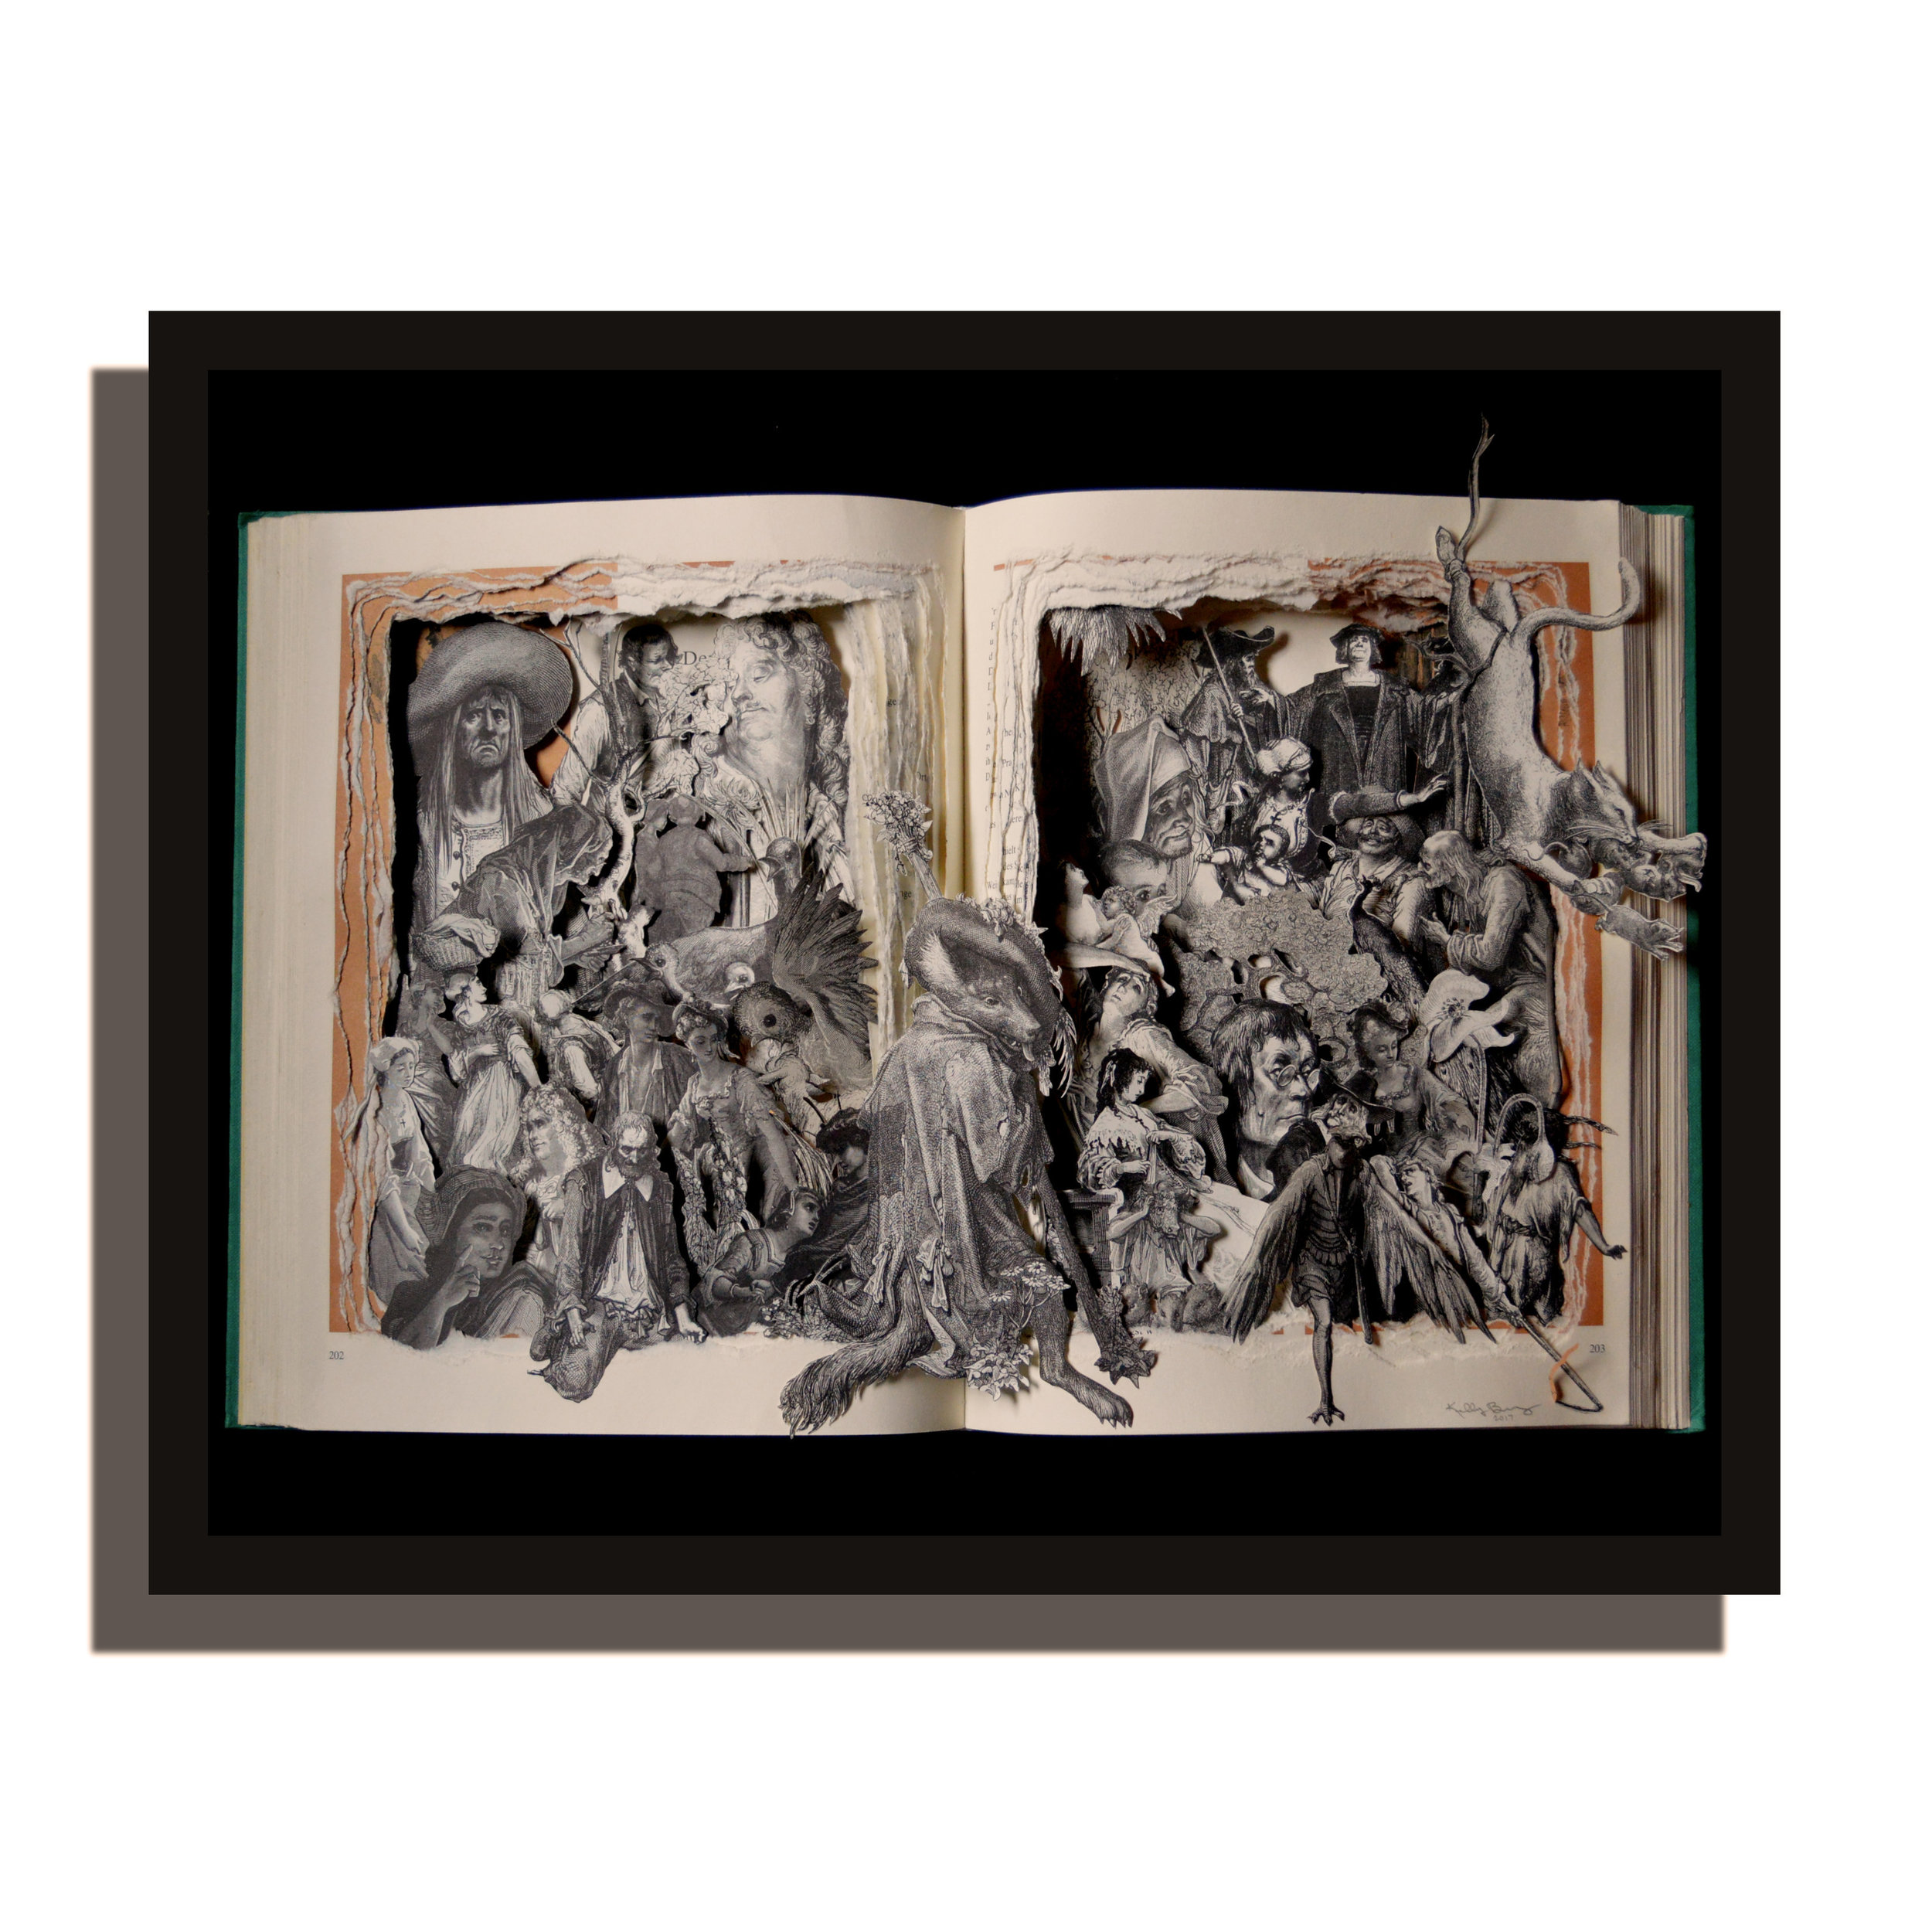 Fables Book Sculpture - Illustrations by Gustave Dore'